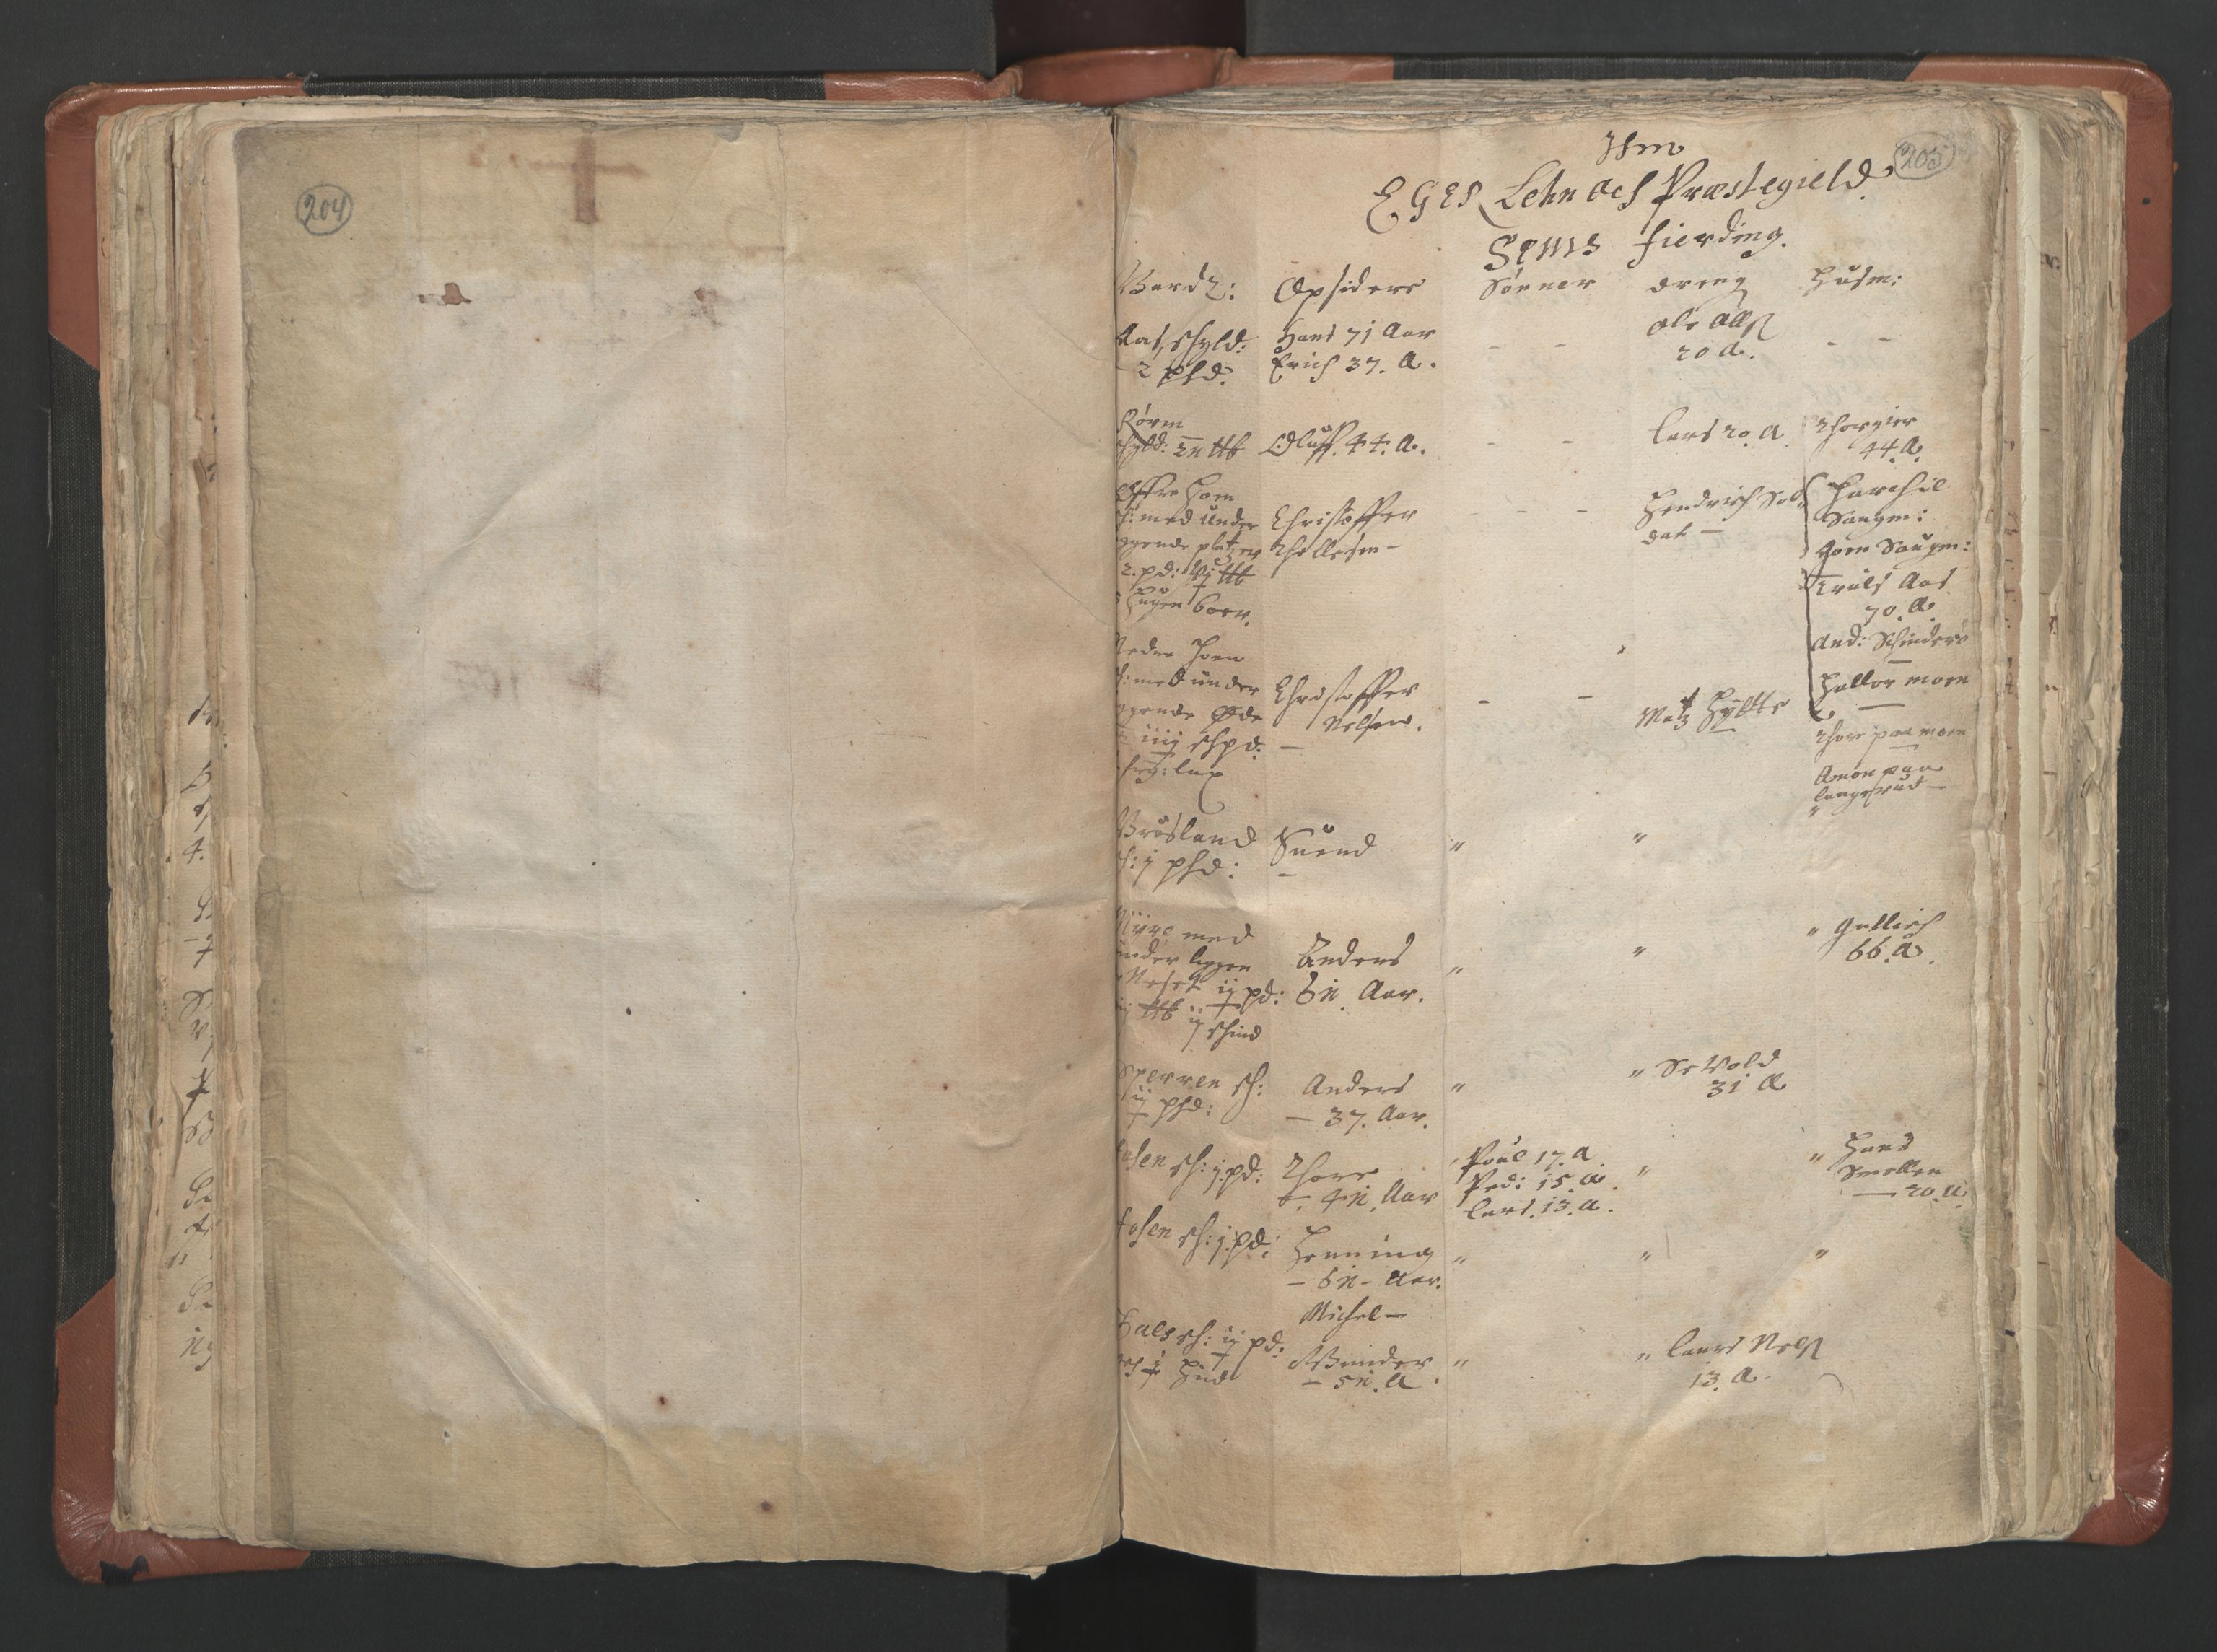 RA, Vicar's Census 1664-1666, no. 9: Bragernes deanery, 1664-1666, p. 204-205